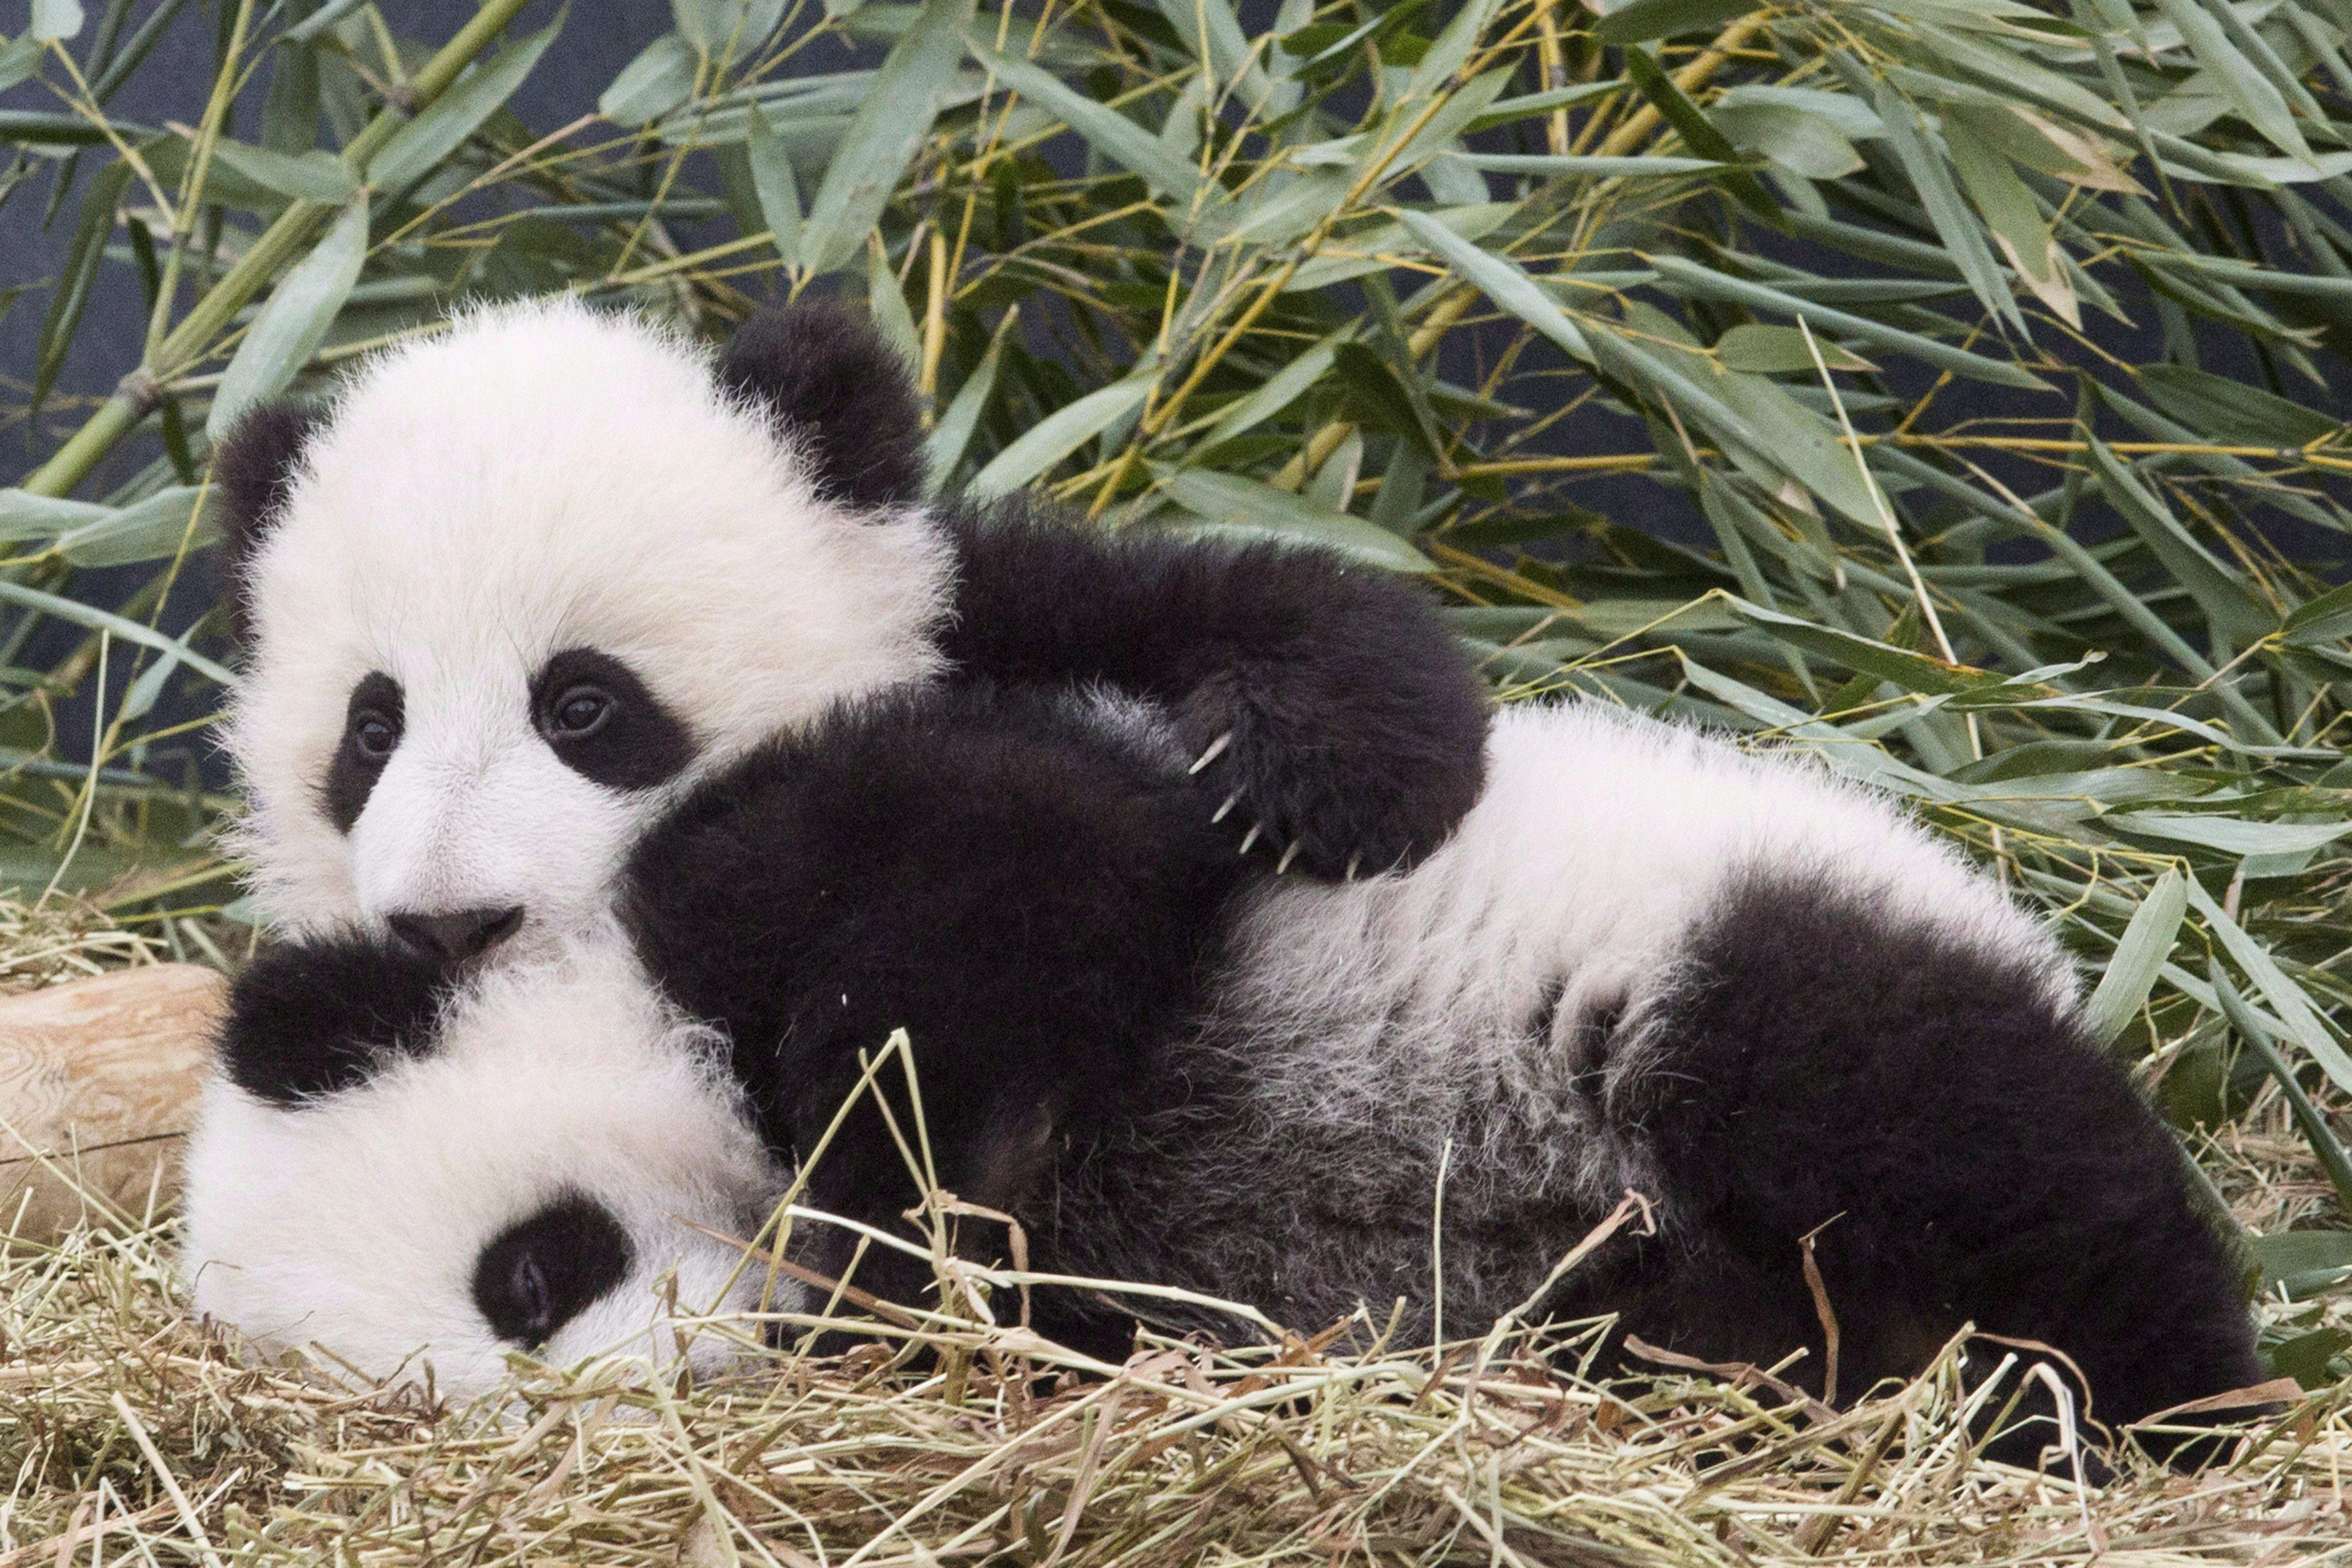 Panda cubs Jia Panpan and Jia Yueyue play in an enclosure at the Toronto Zoo on March 7, 2016. THE CANADIAN PRESS/Chris Young